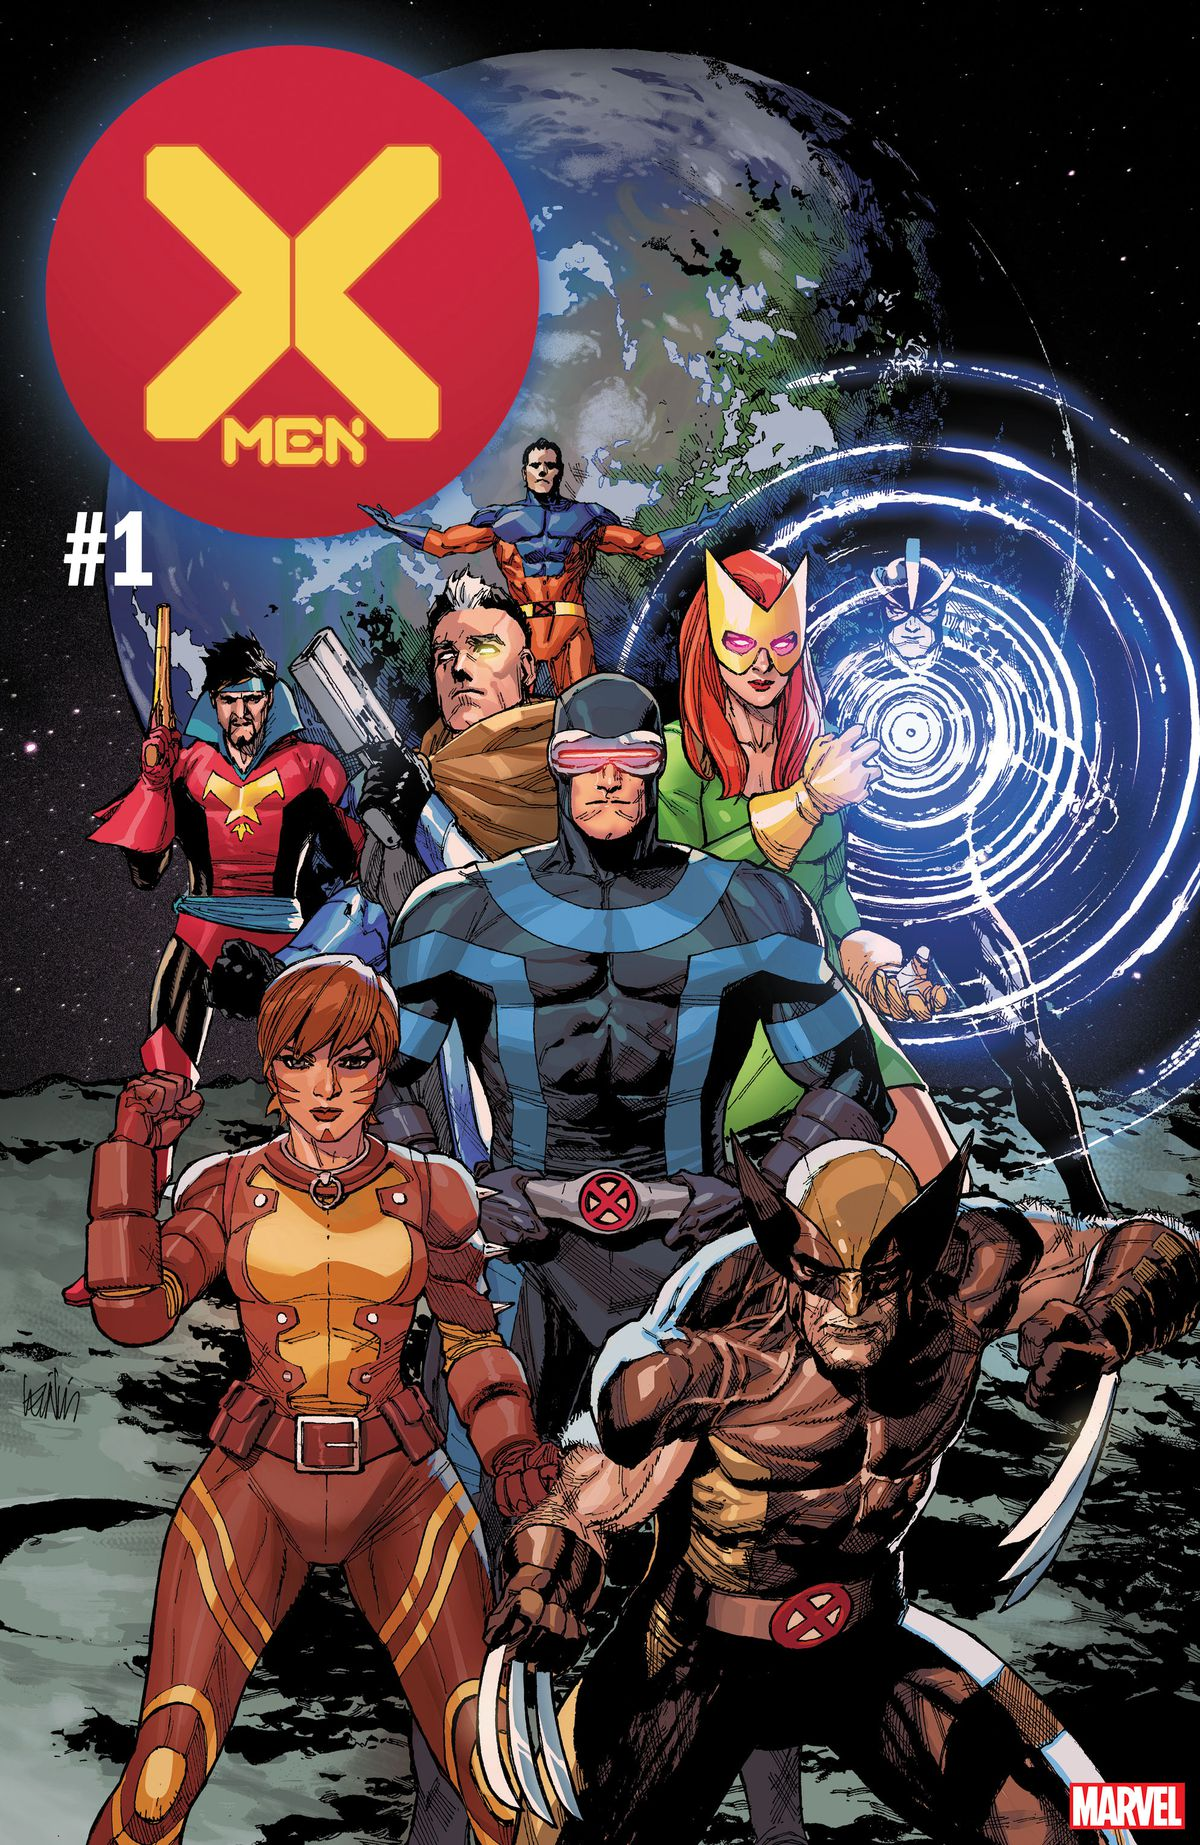 Cyclops, Jean Grey, Nate Grey, Teen Cable, Rachel Summers, Havoc, Corsair, and Wolverine are all on the moon on the cover of X-Men #1, Marvel Comics (2019).